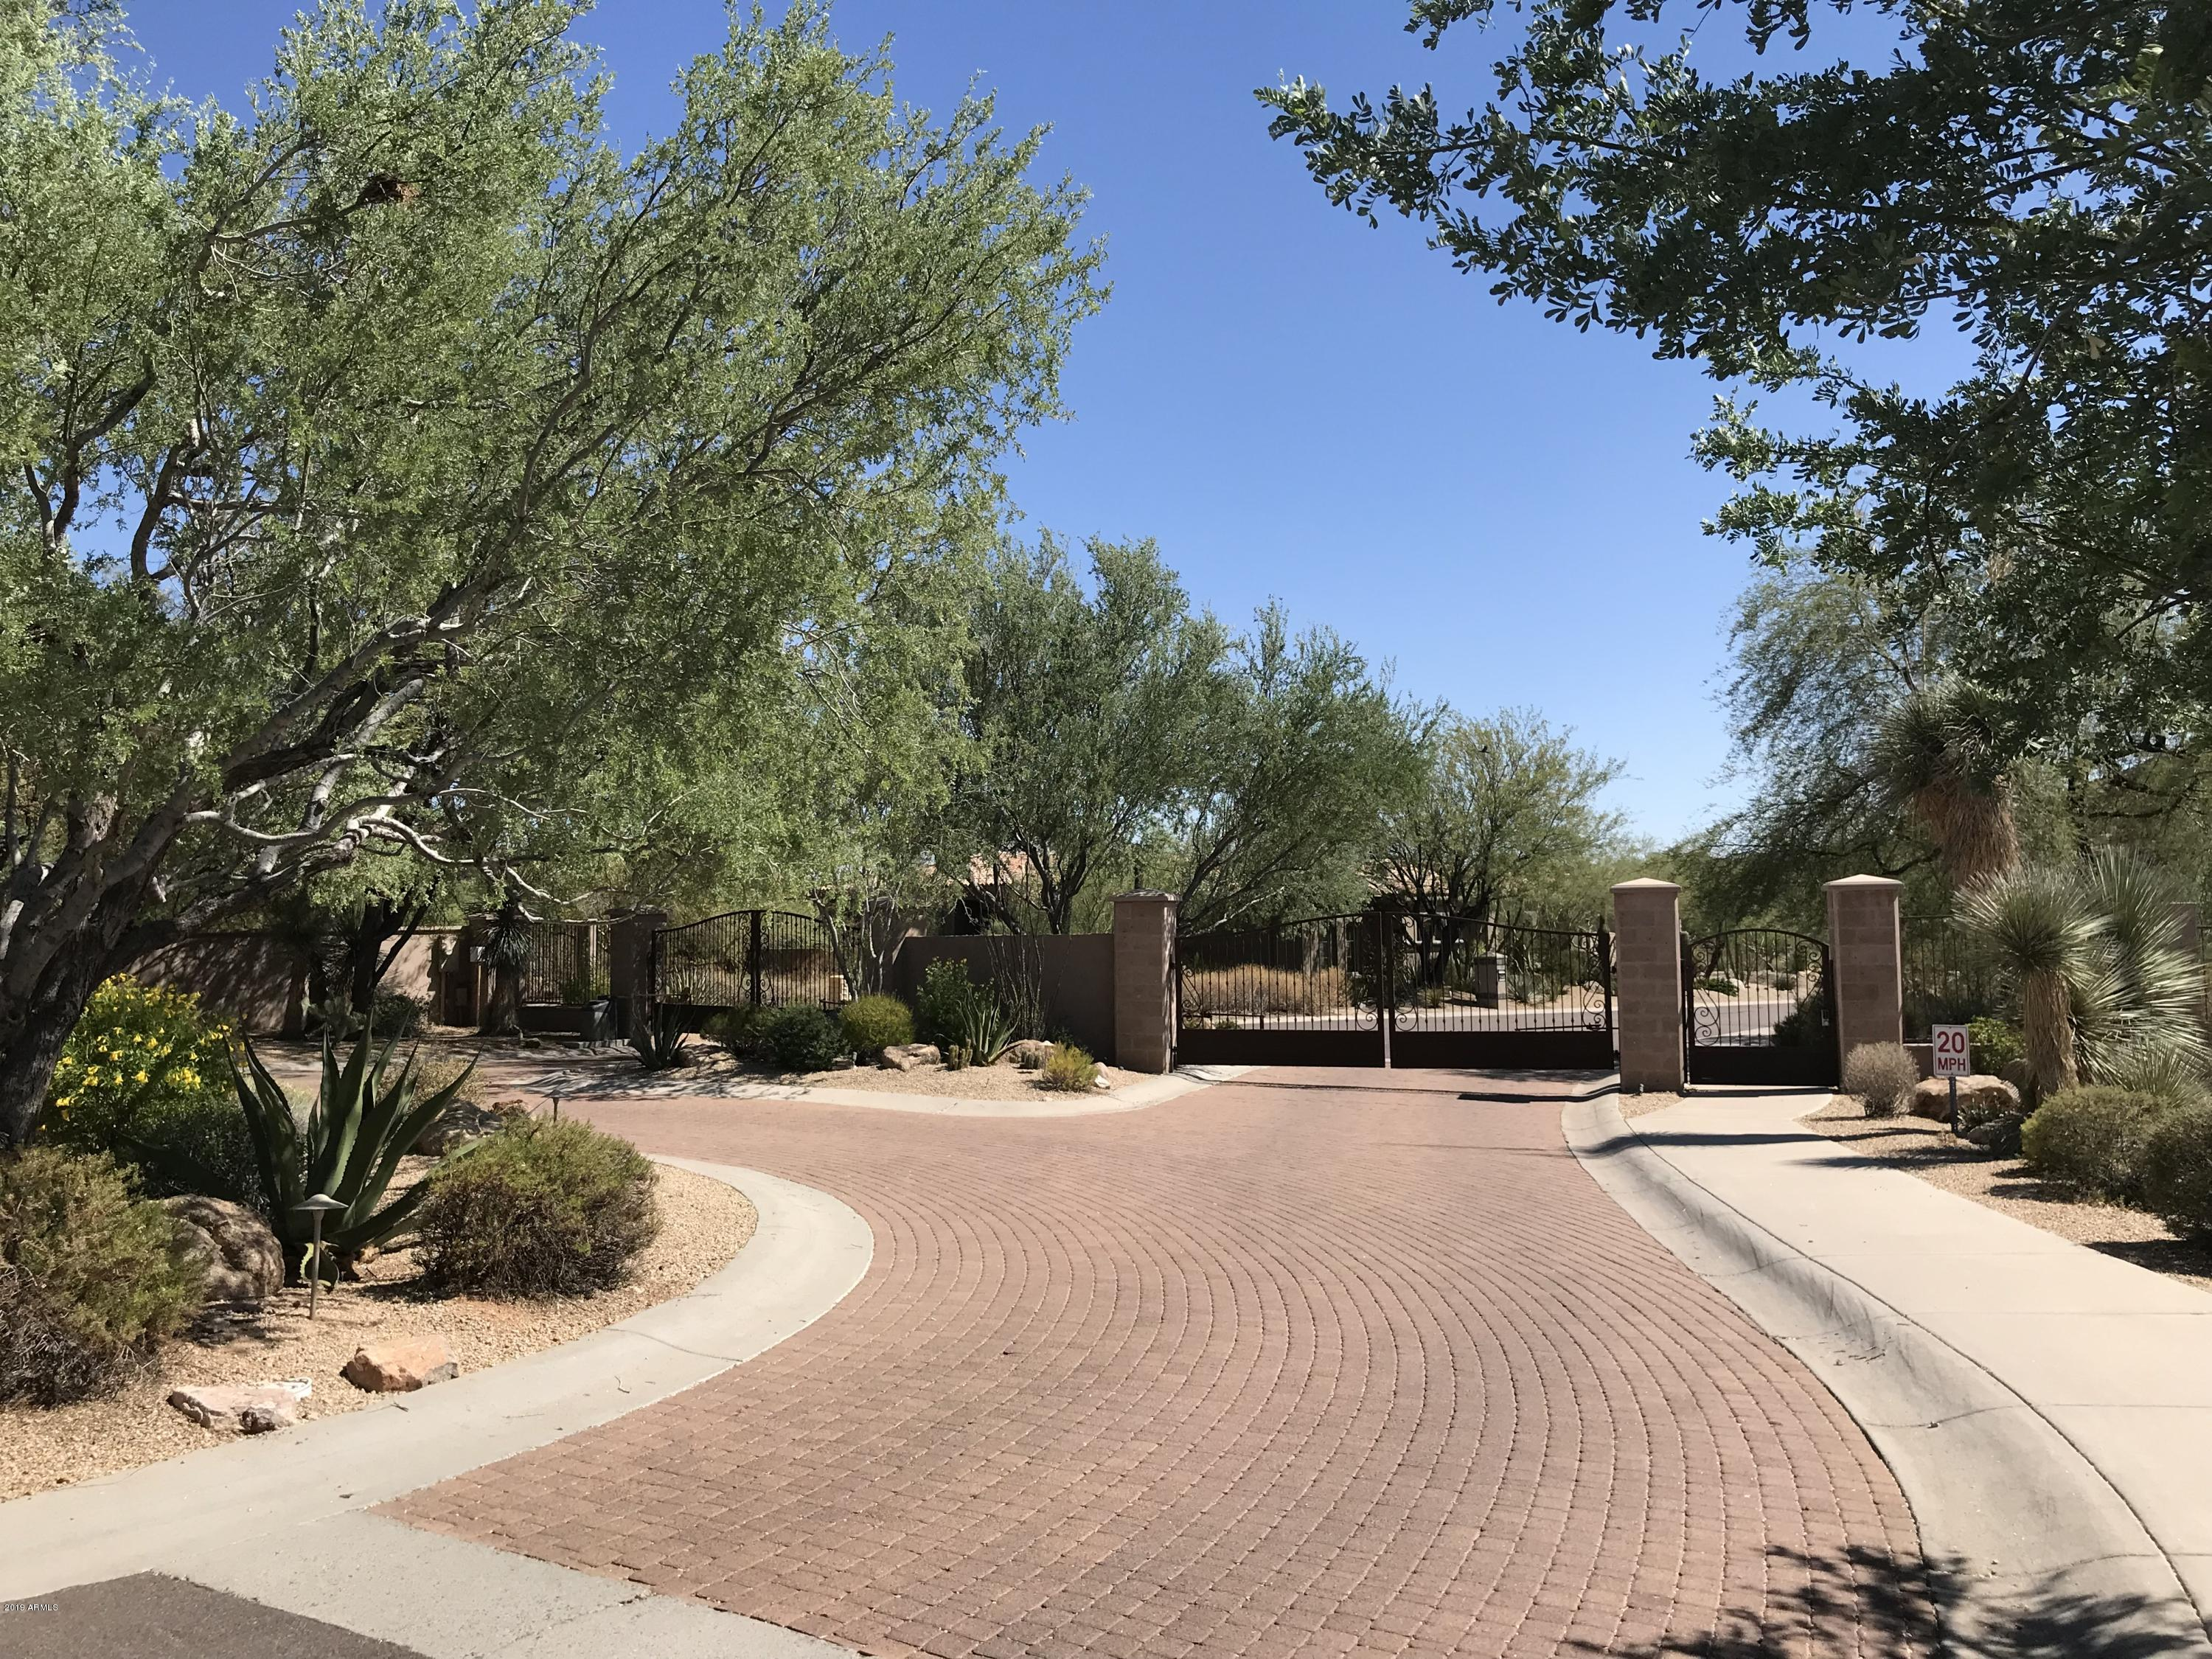 MLS 5968548 13558 E COCHISE Road, Scottsdale, AZ 85259 Scottsdale AZ Private Pool